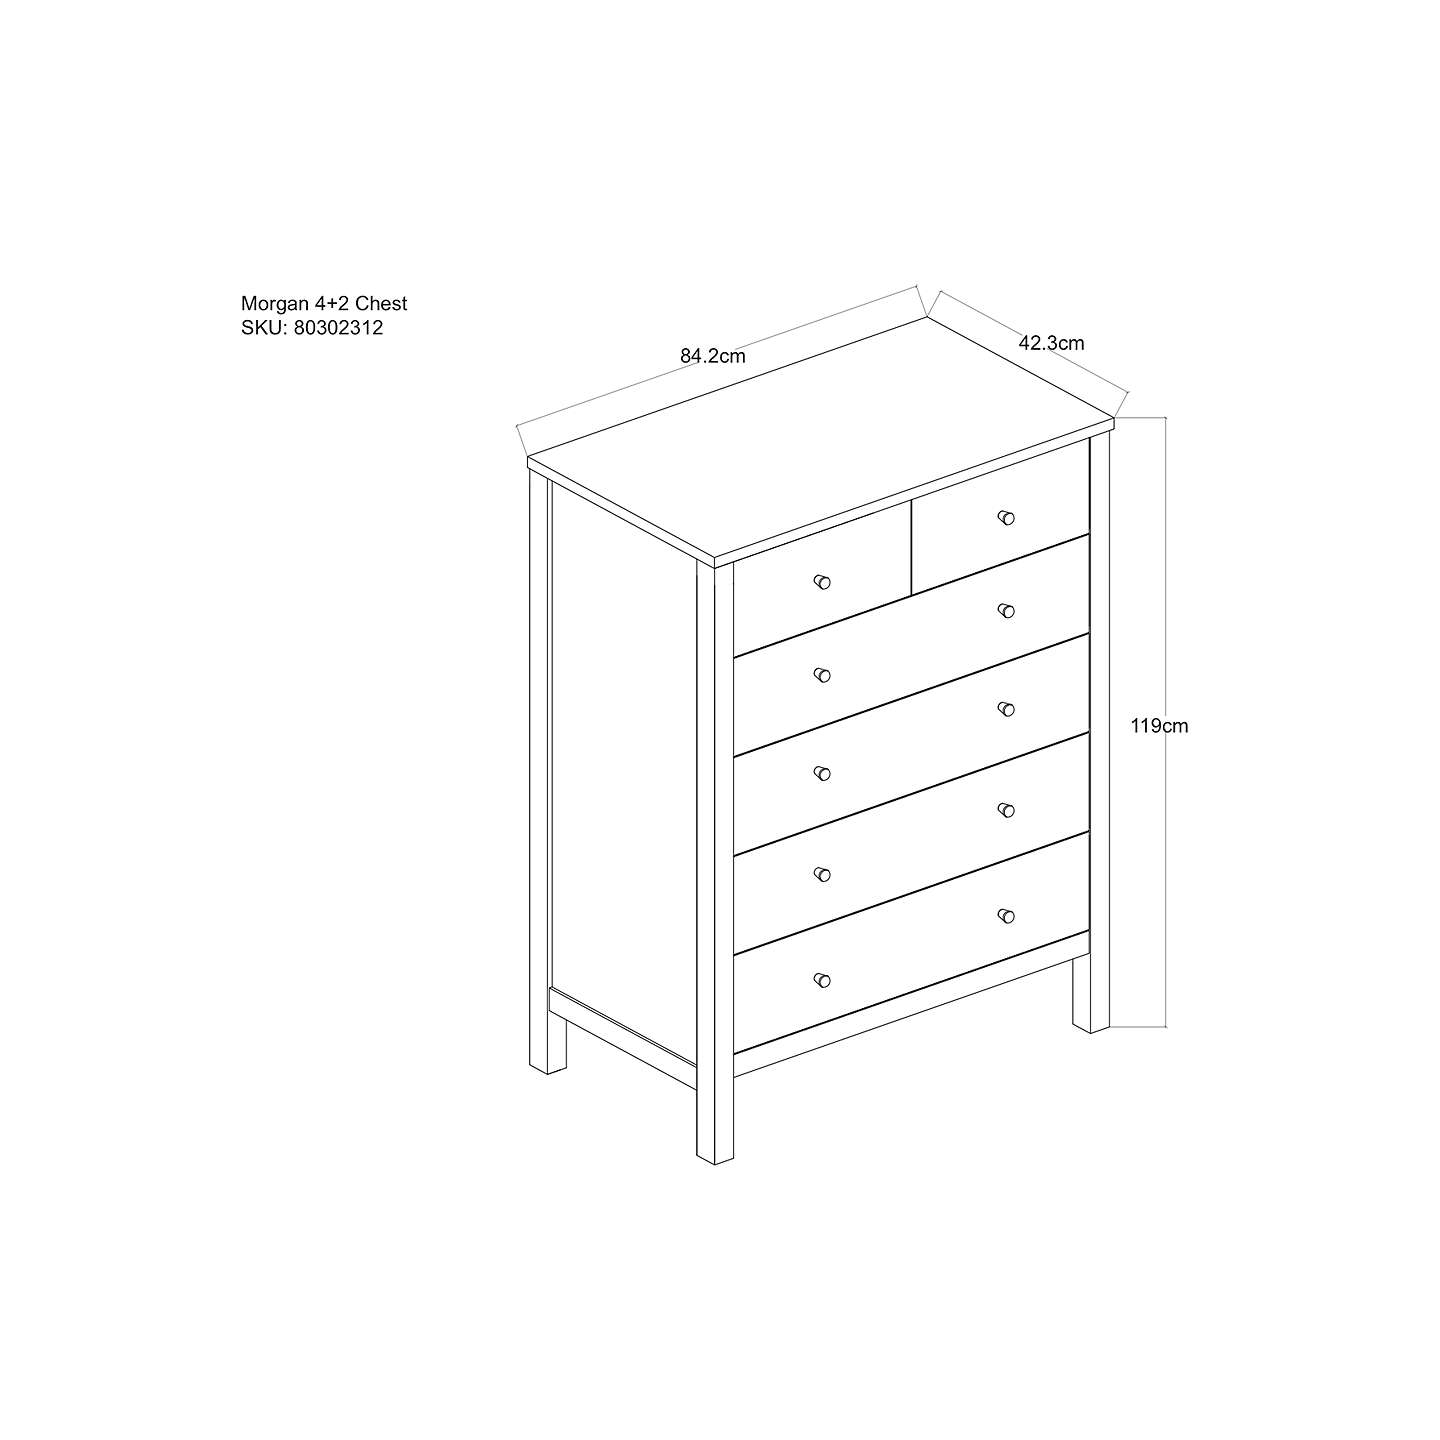 BuyJohn Lewis Morgan 6 Drawer Chest, Oak Online at johnlewis.com